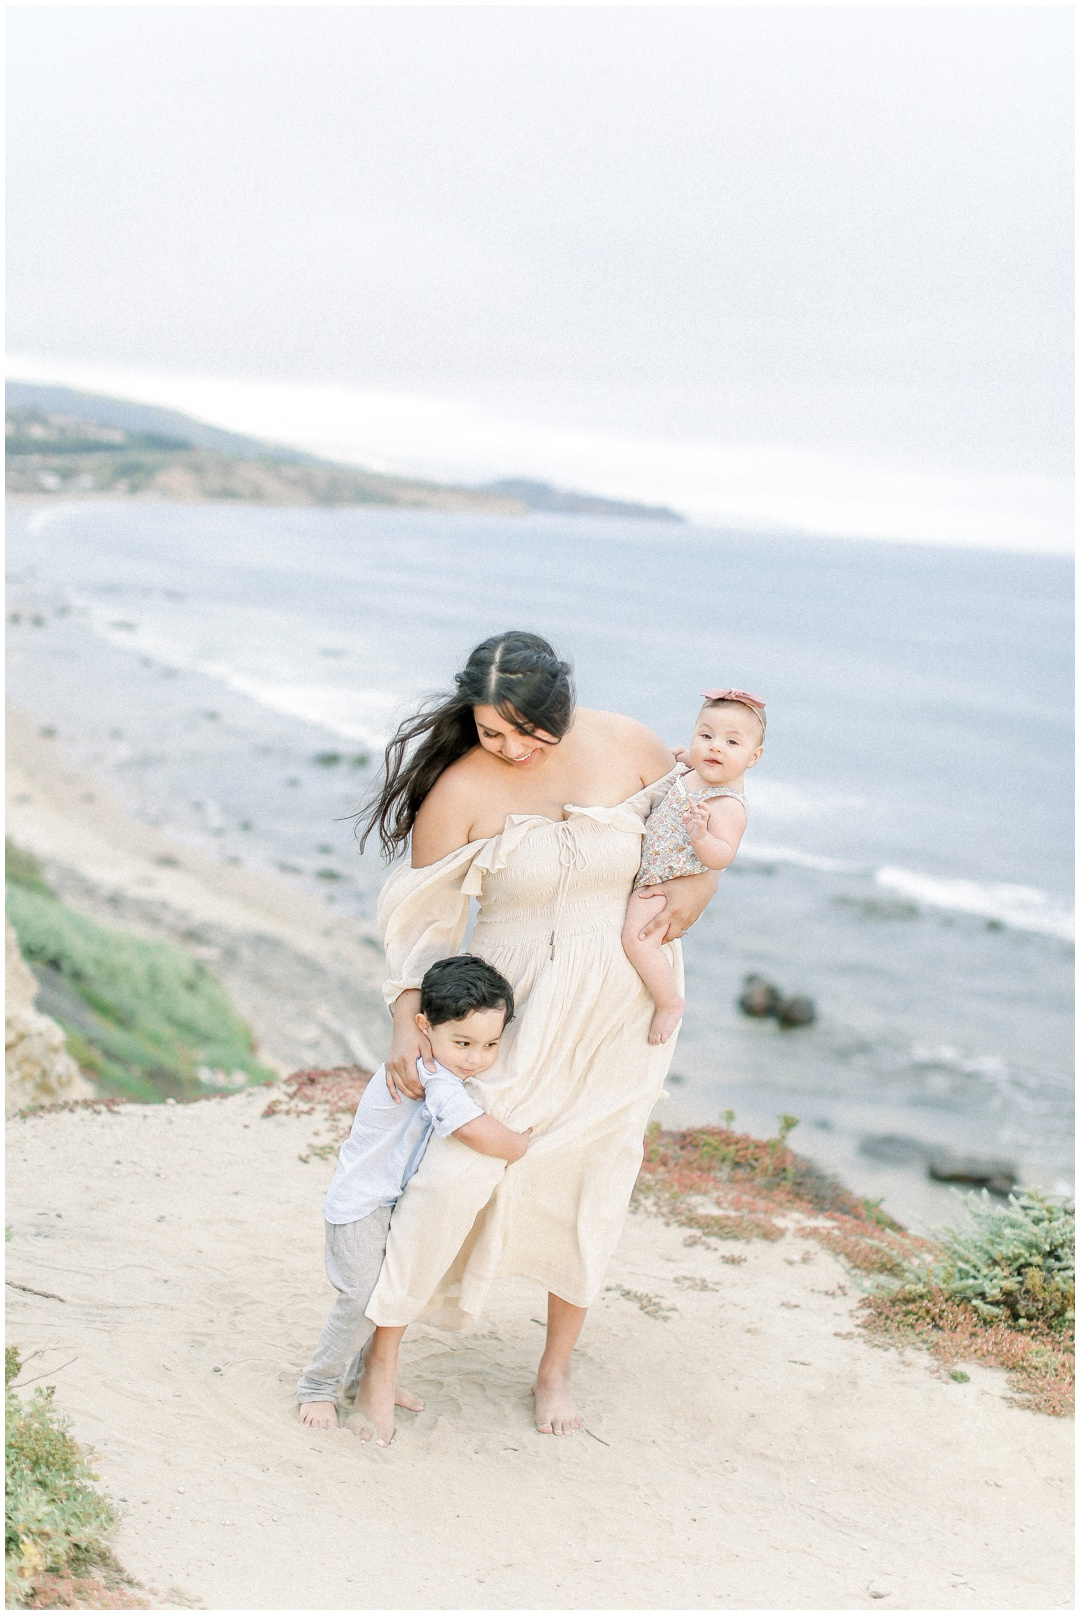 Newport_Beach_Newborn_Light_Airy_Natural_Photographer_Newport_Beach_Photographer_Orange_County_Family_Photographer_Cori_Kleckner_Photography_Huntington_Beach_Photographer_Family_OC_Newborn_Natalie_Nunez_Thomas_Nunez_Natalie_Roca_Rosh_Nunez_Family_3552.jpg